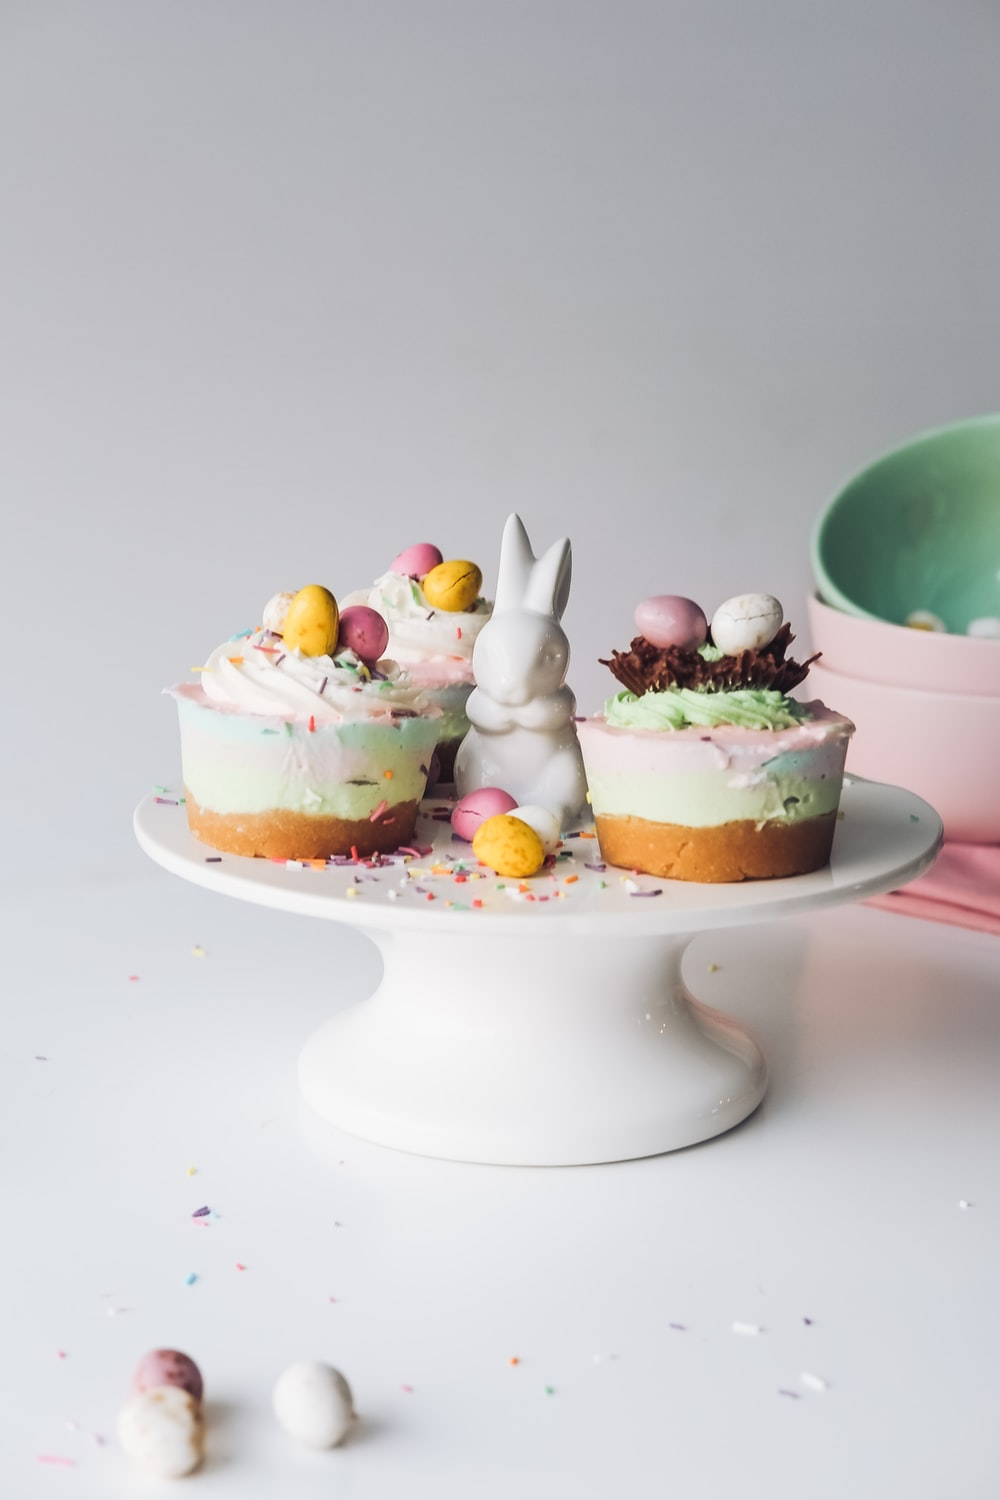 easter baking of cakes placed on white ceramic cake stand